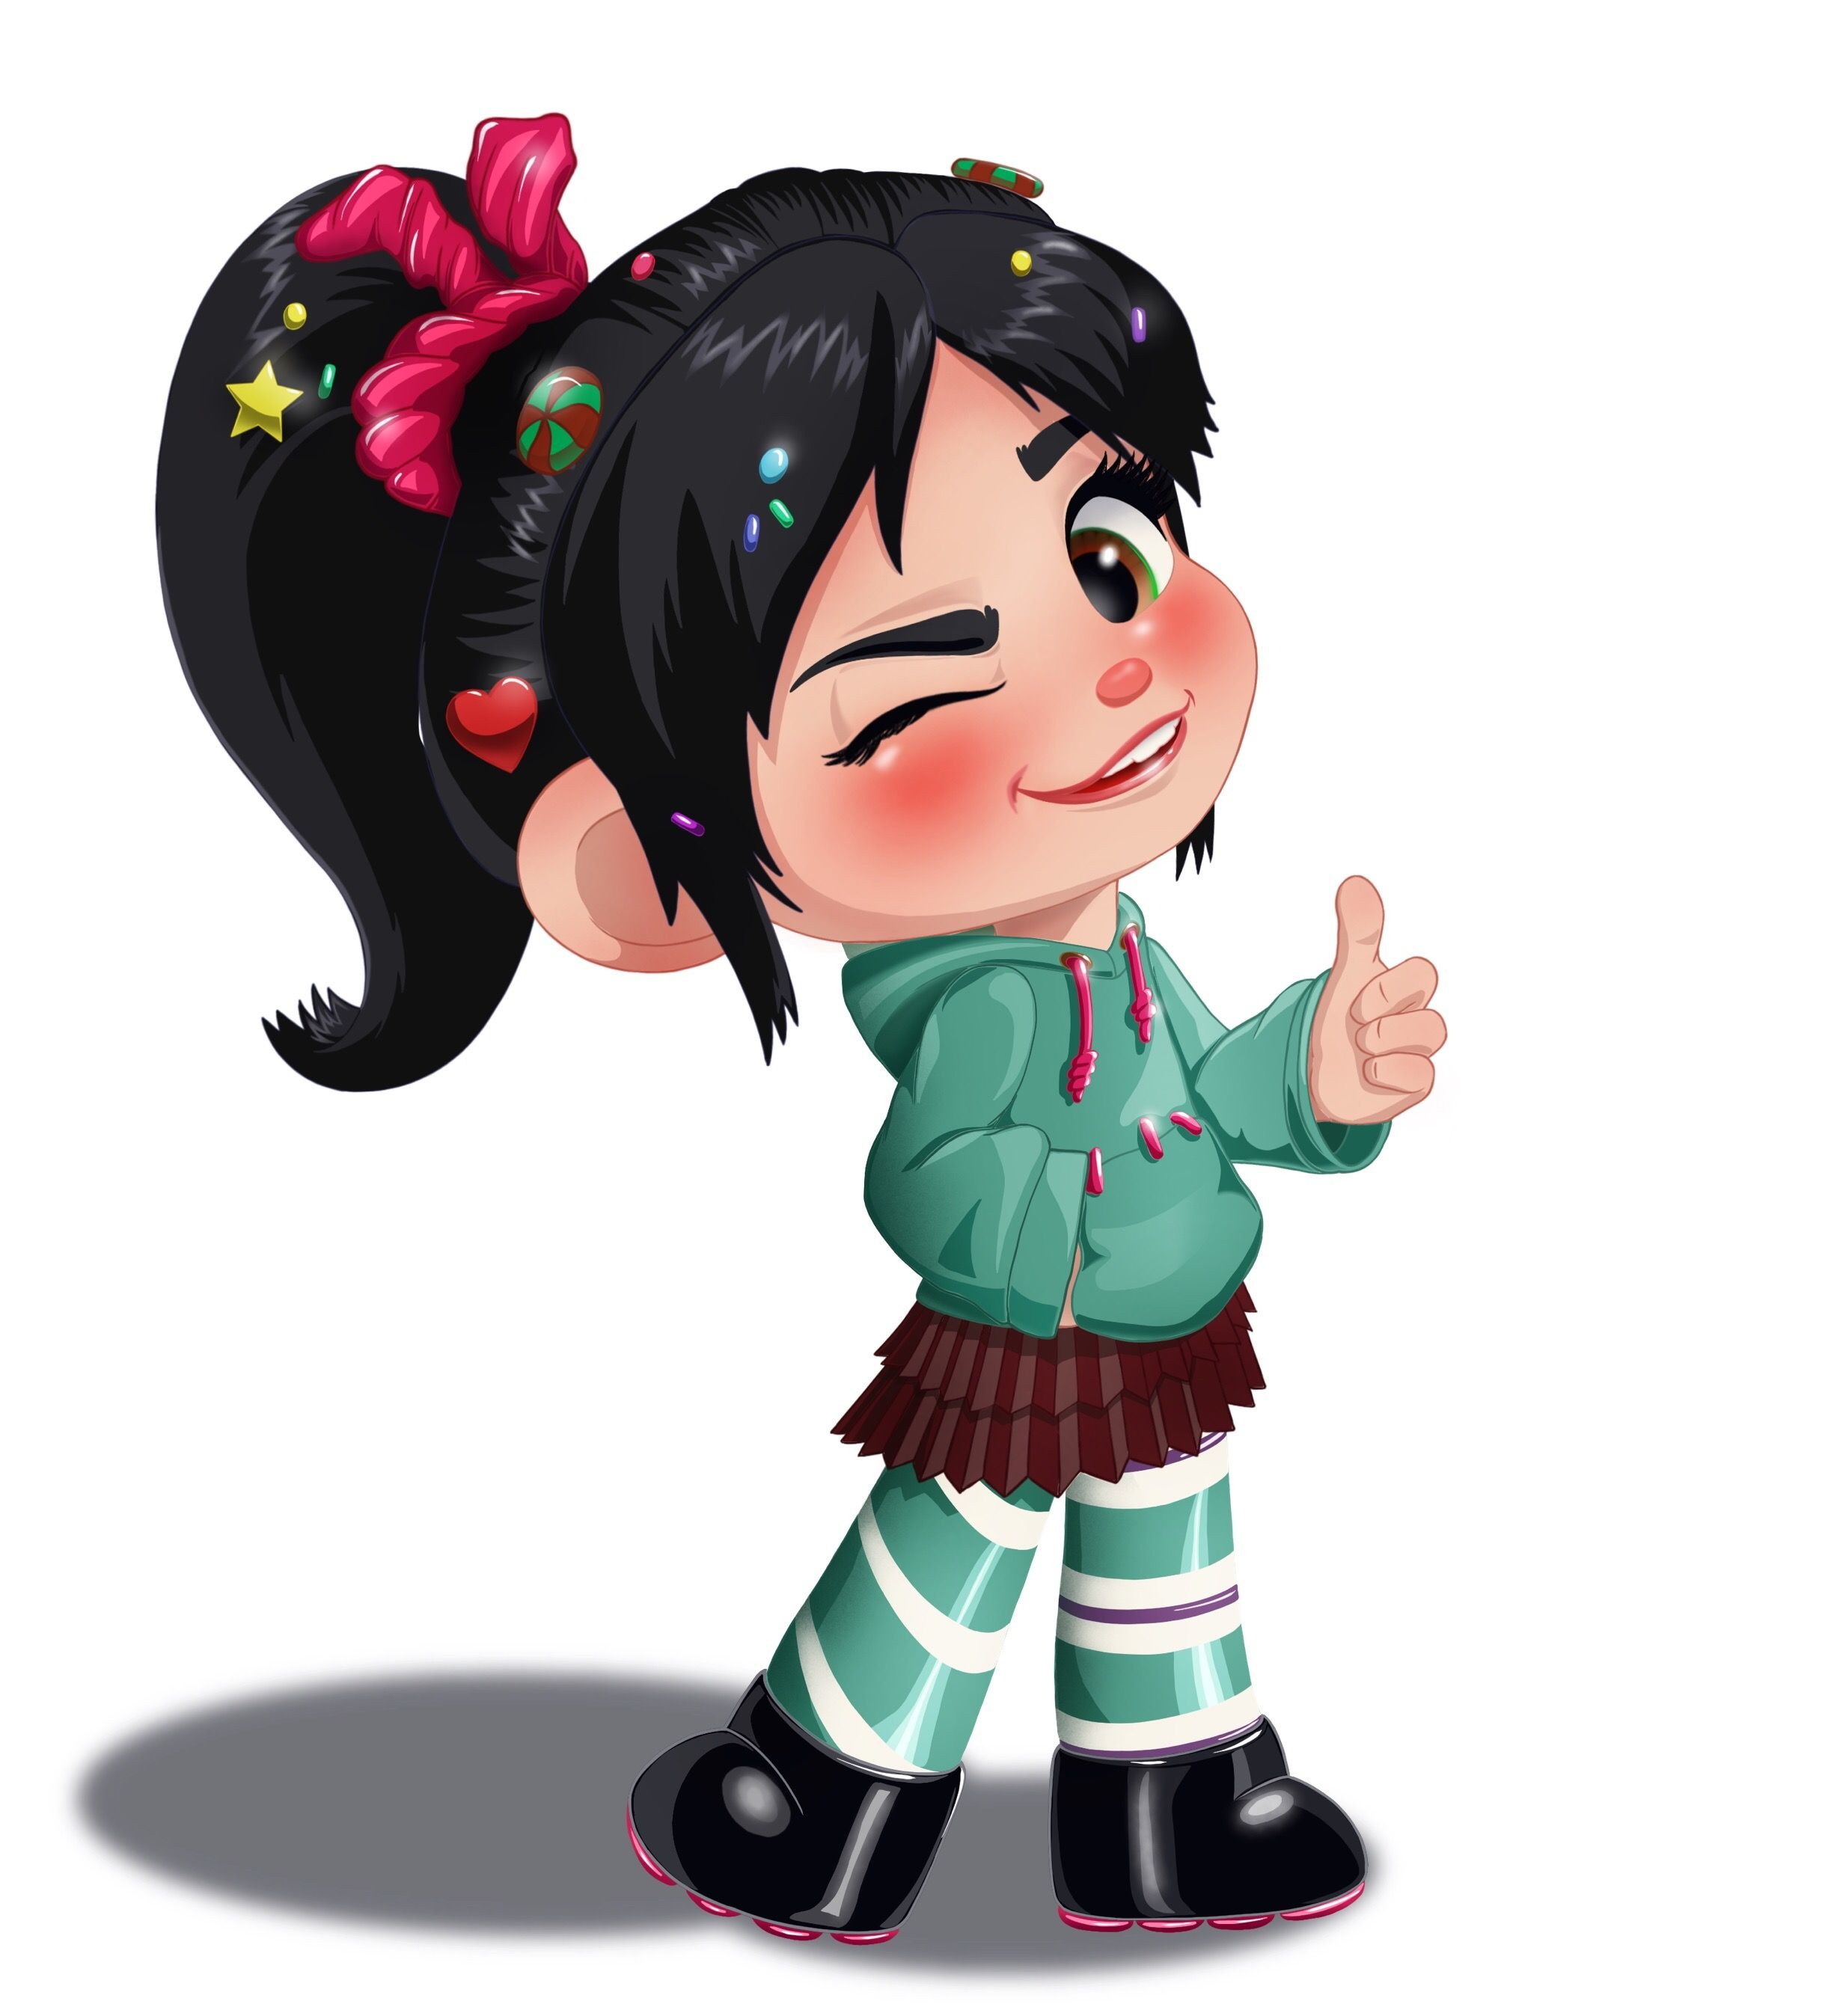 Vanellope Von Schweetz From The Disney Animated Movie Wreck It Ralph And Breaks Internet